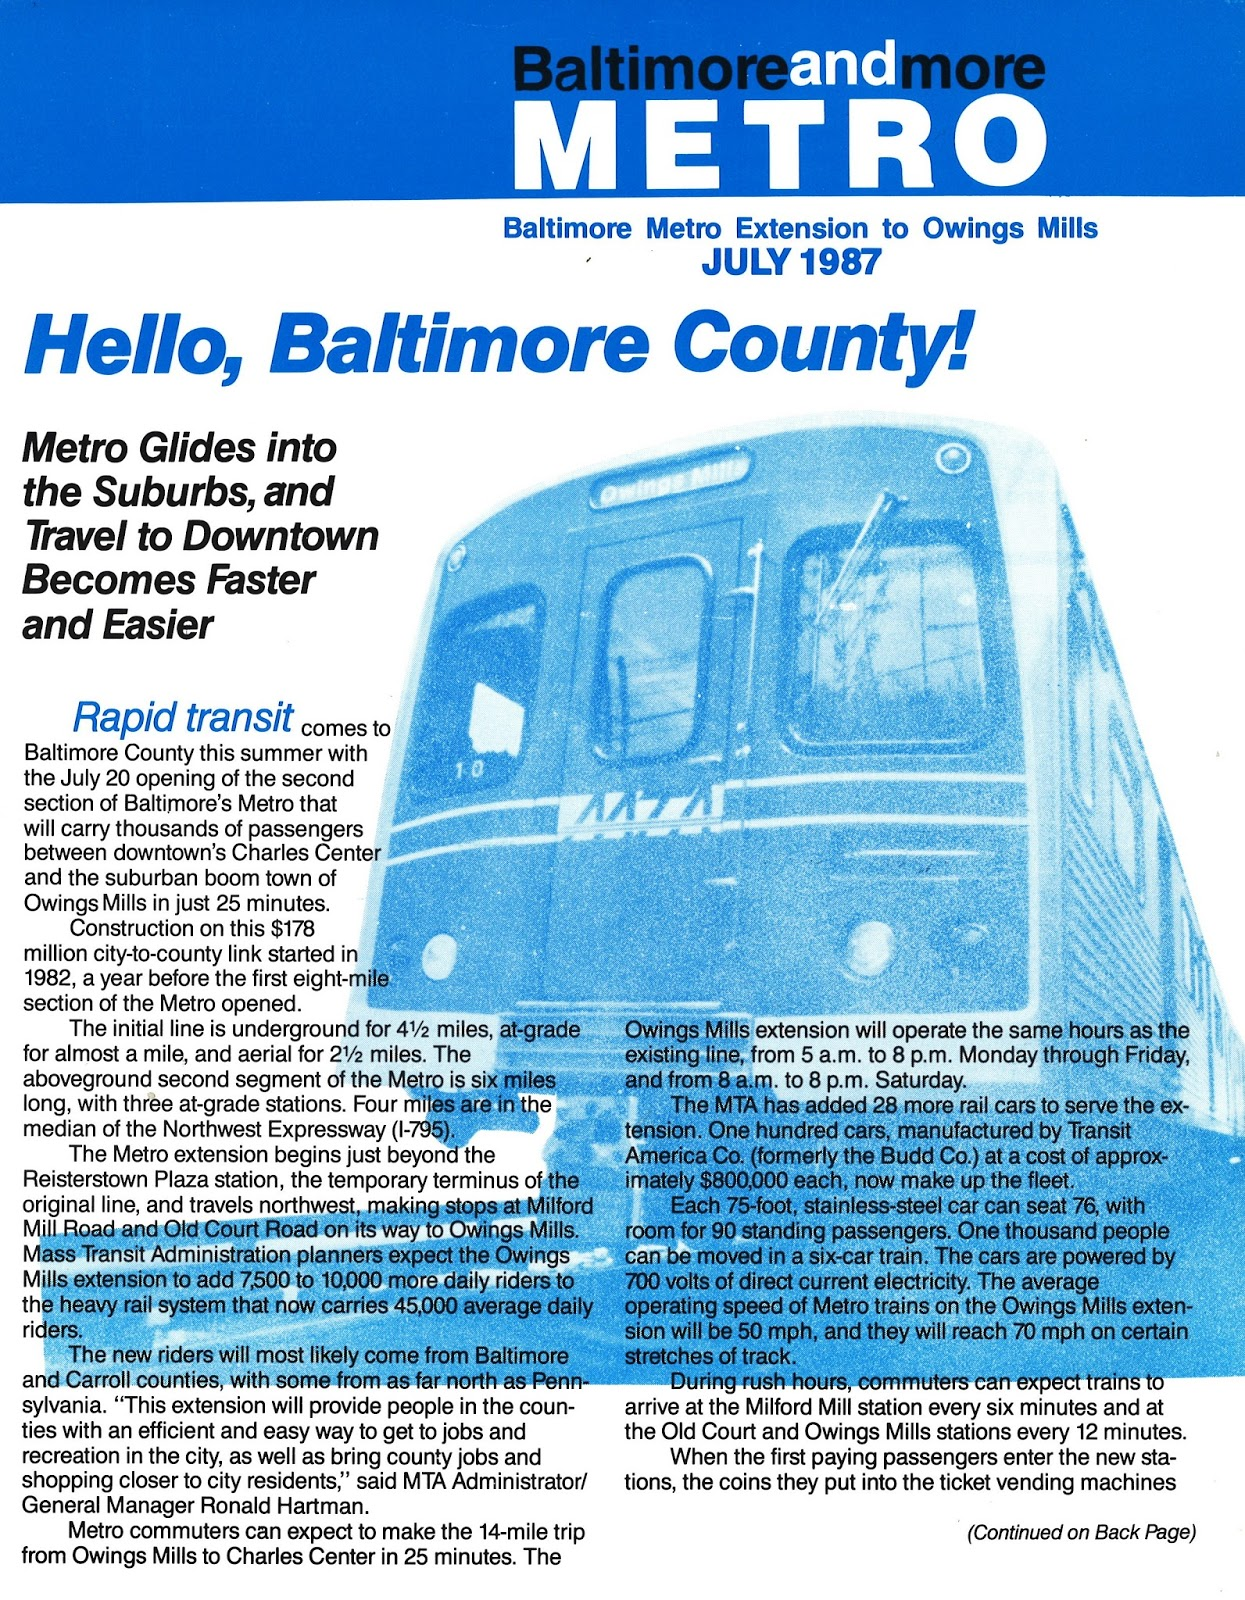 baltimore metro celebrates 28 years of connecting out of town with downtown